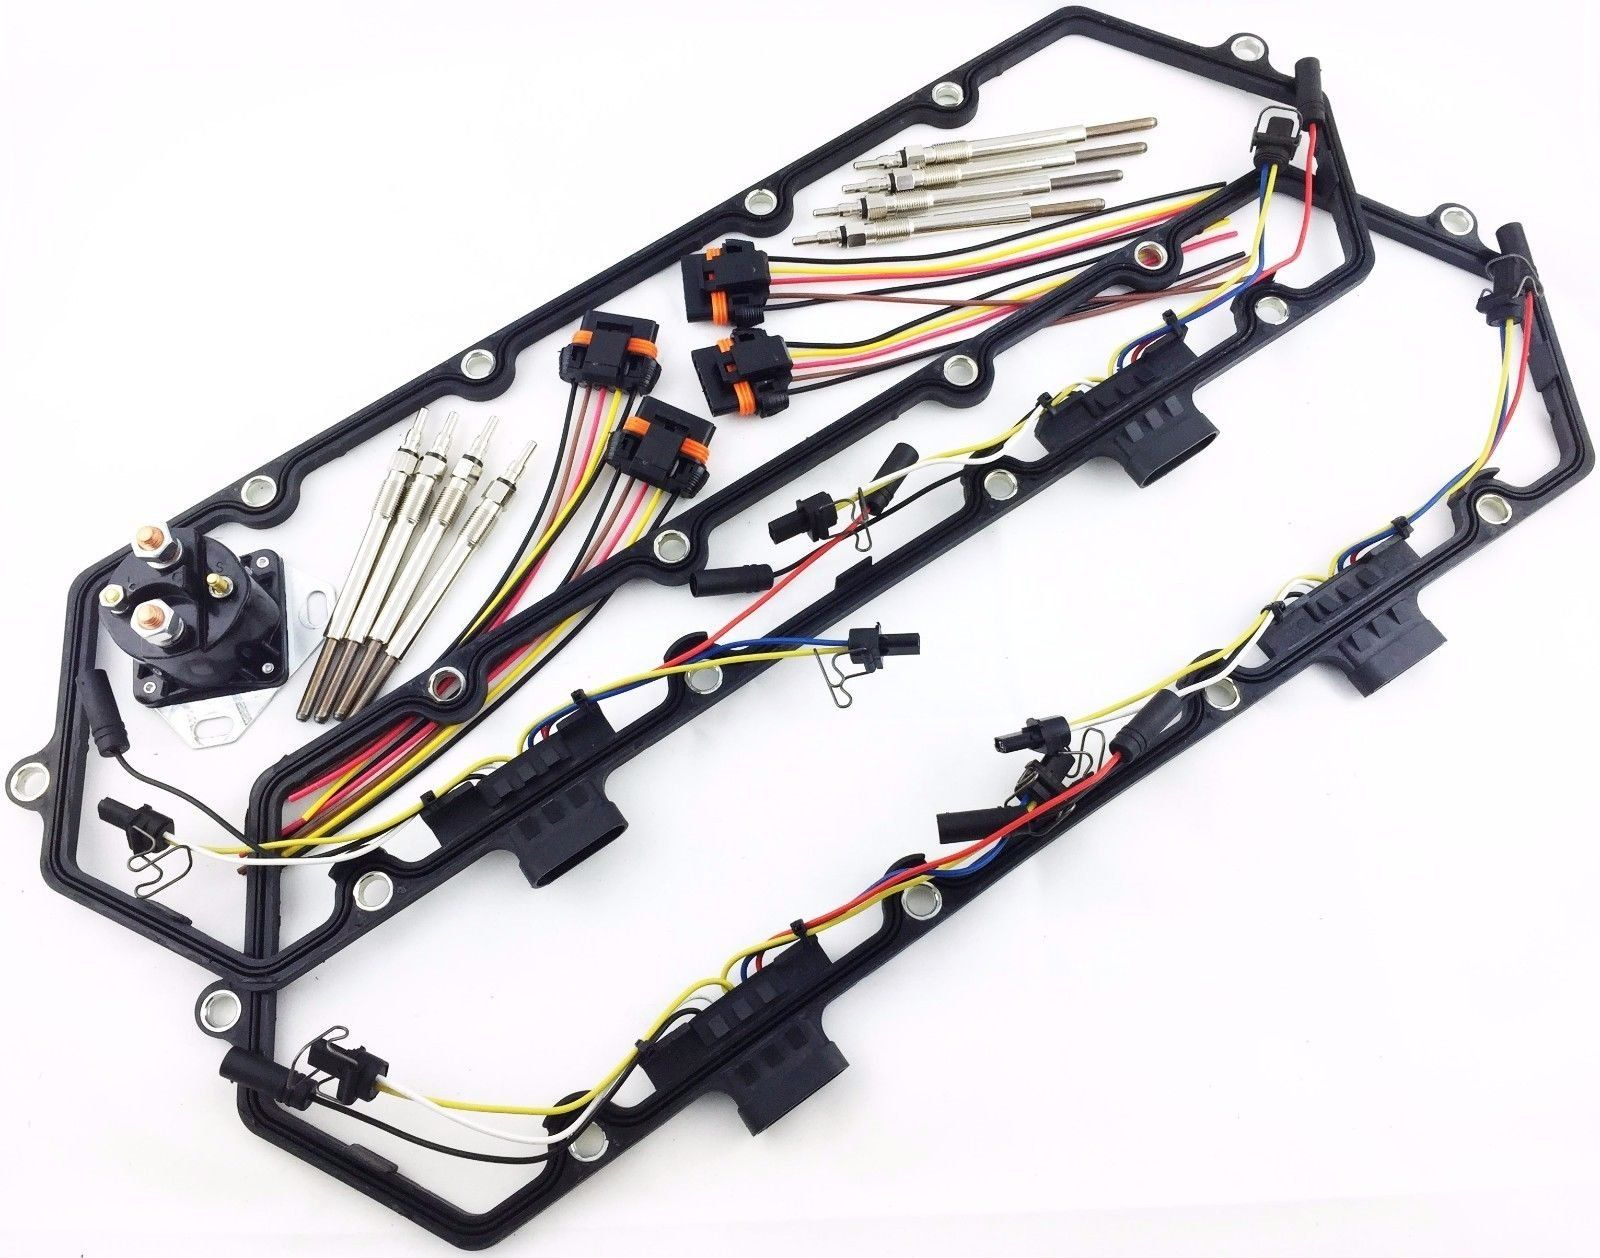 hight resolution of 94 97 powerstroke ford 7 3l valve cover gaskets injector glow plug relay harness awesome products selected by anna churchill